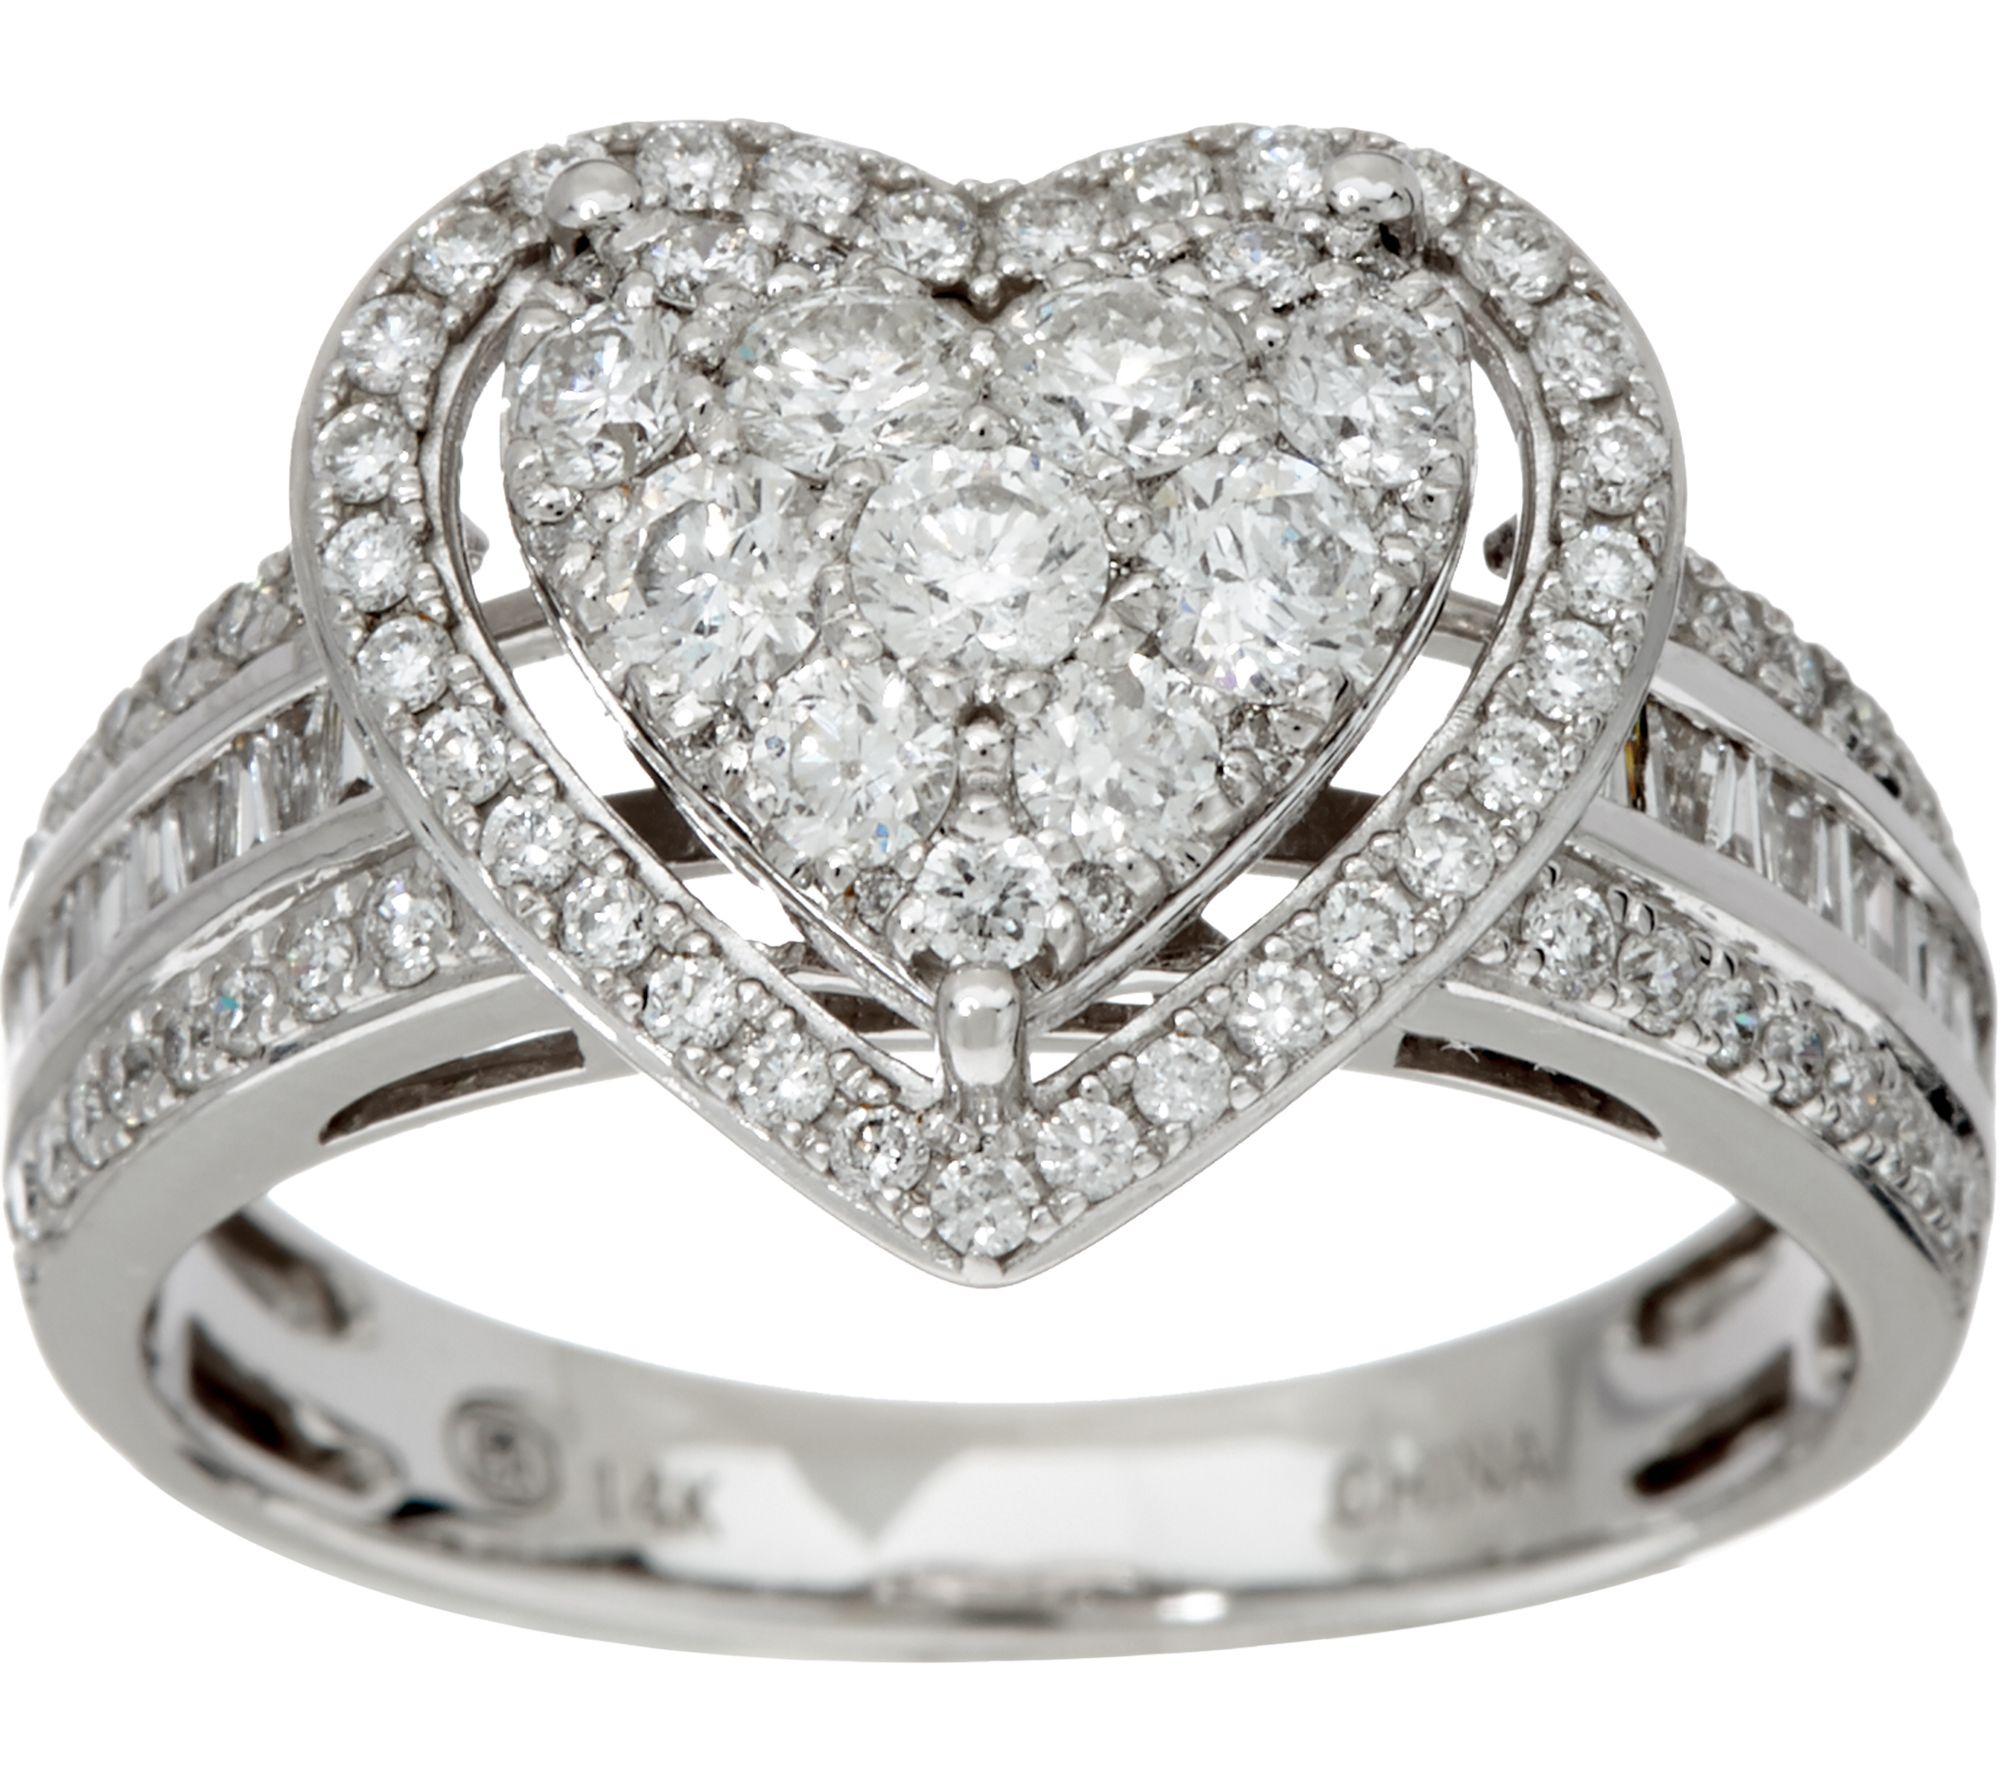 1 00 cttw Heart Cluster Diamond Ring 14K Gold by Affinity Page 1